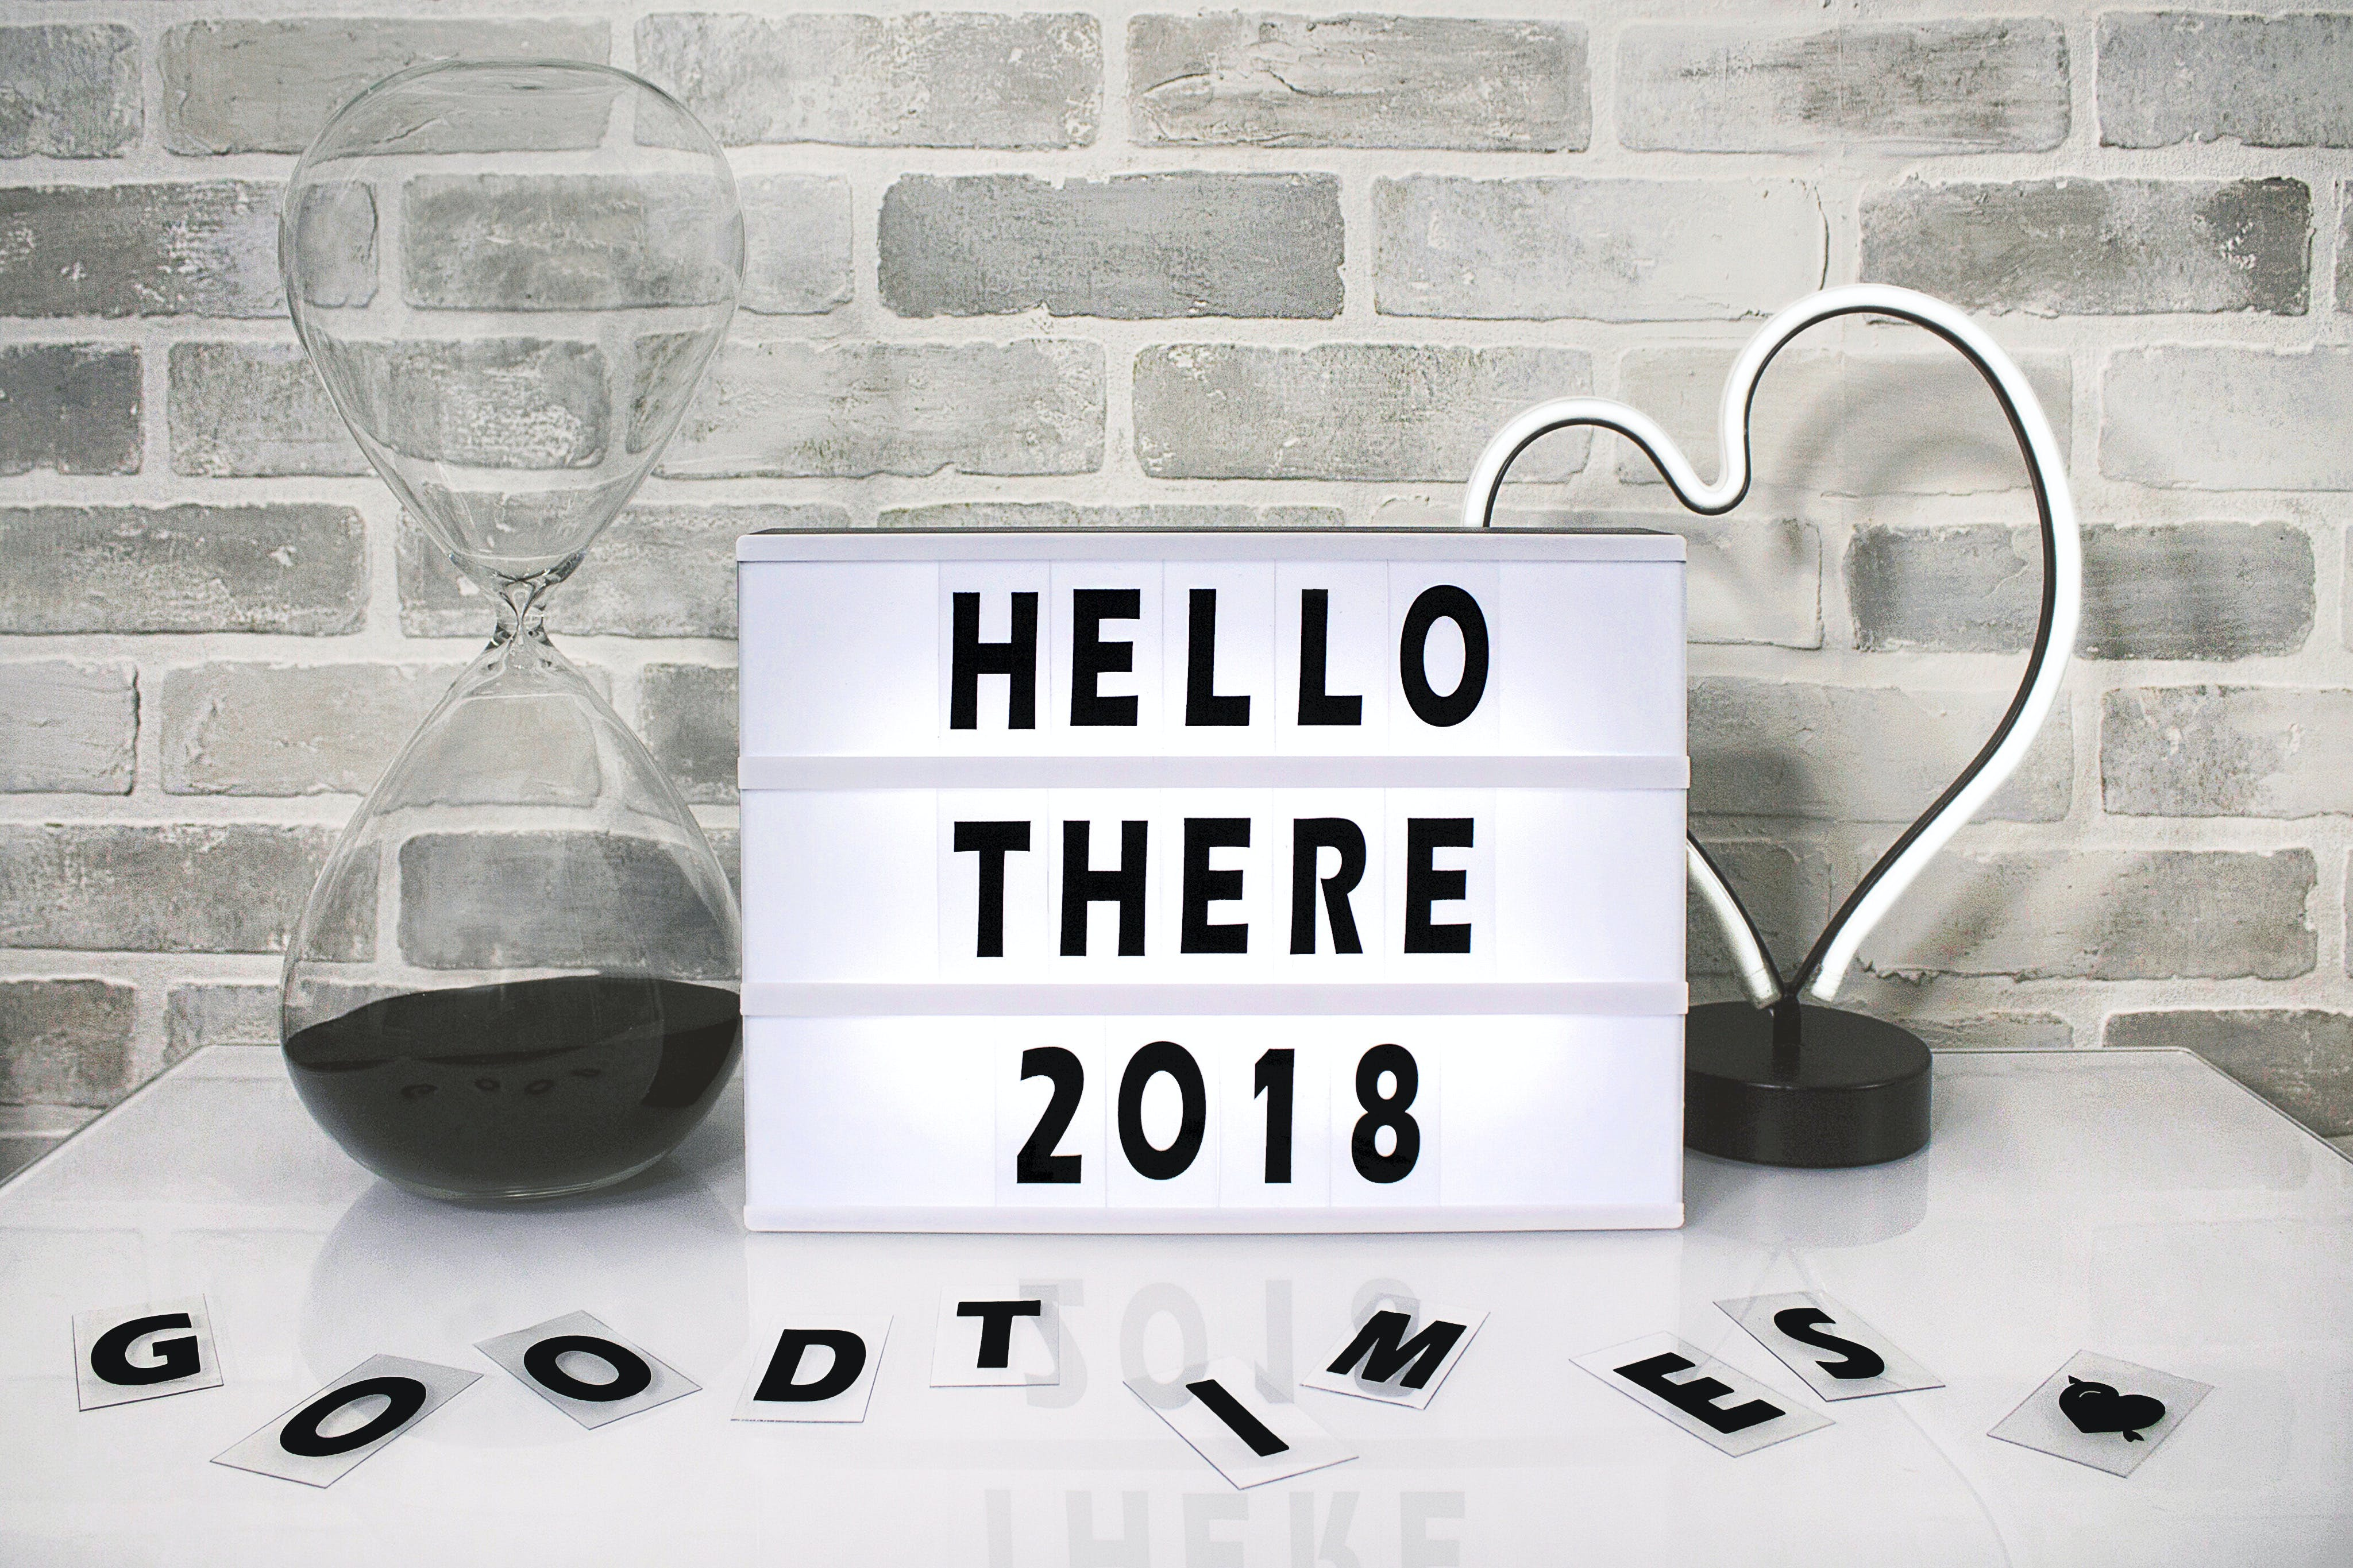 White Hello There 2018 Printed Board Against Gray Wall